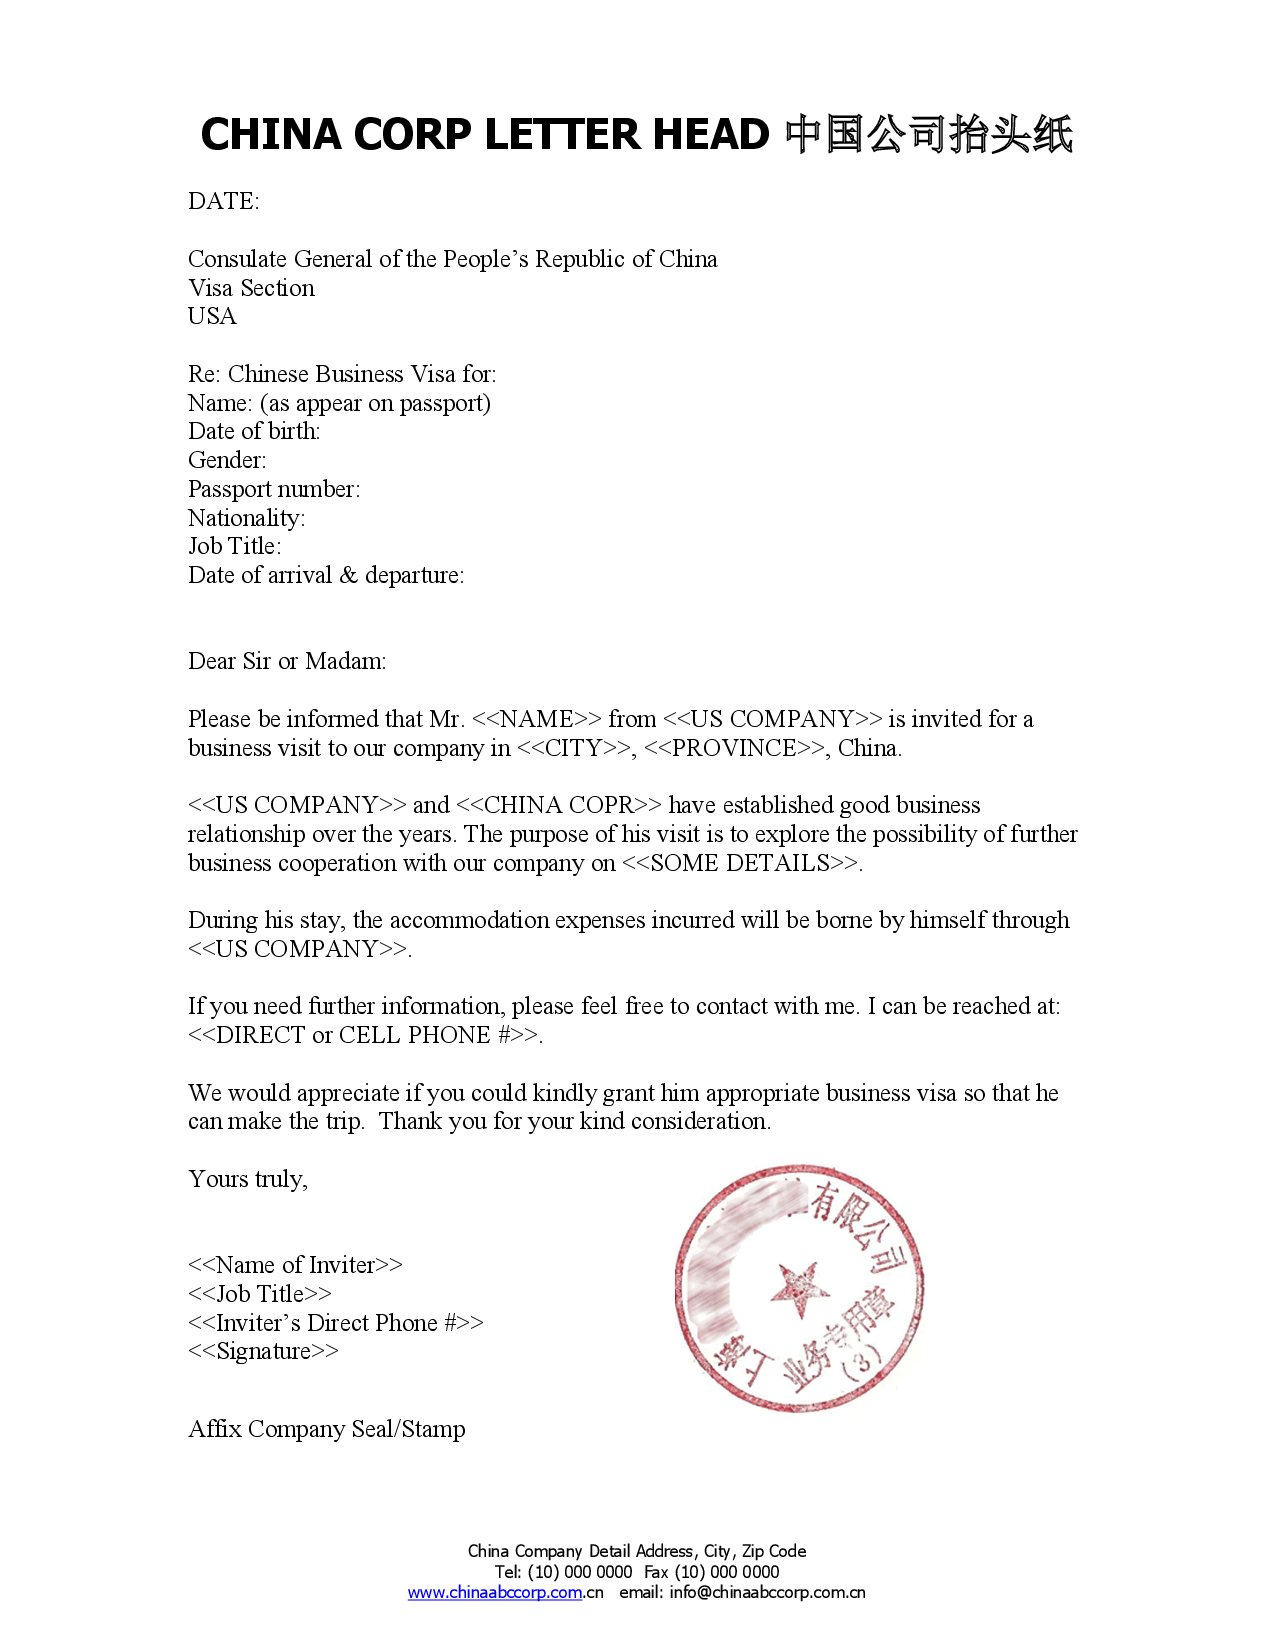 format invitation letter for business visa to china lettervisa invitation letter application letter sample - Sample Of Cover Letter Zambia Visa